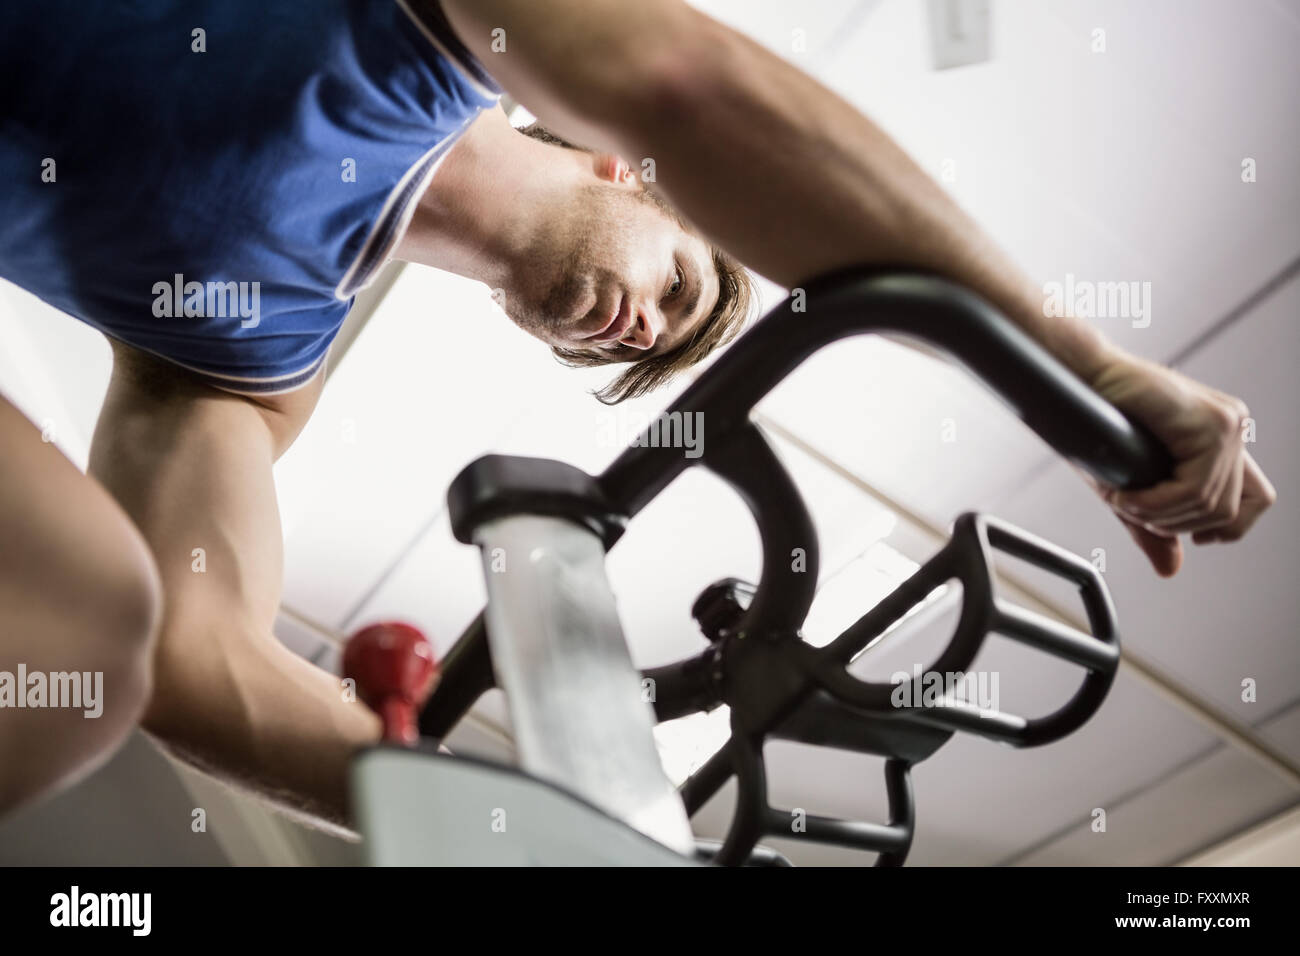 Man working out on exercise bike at spinning class - Stock Image